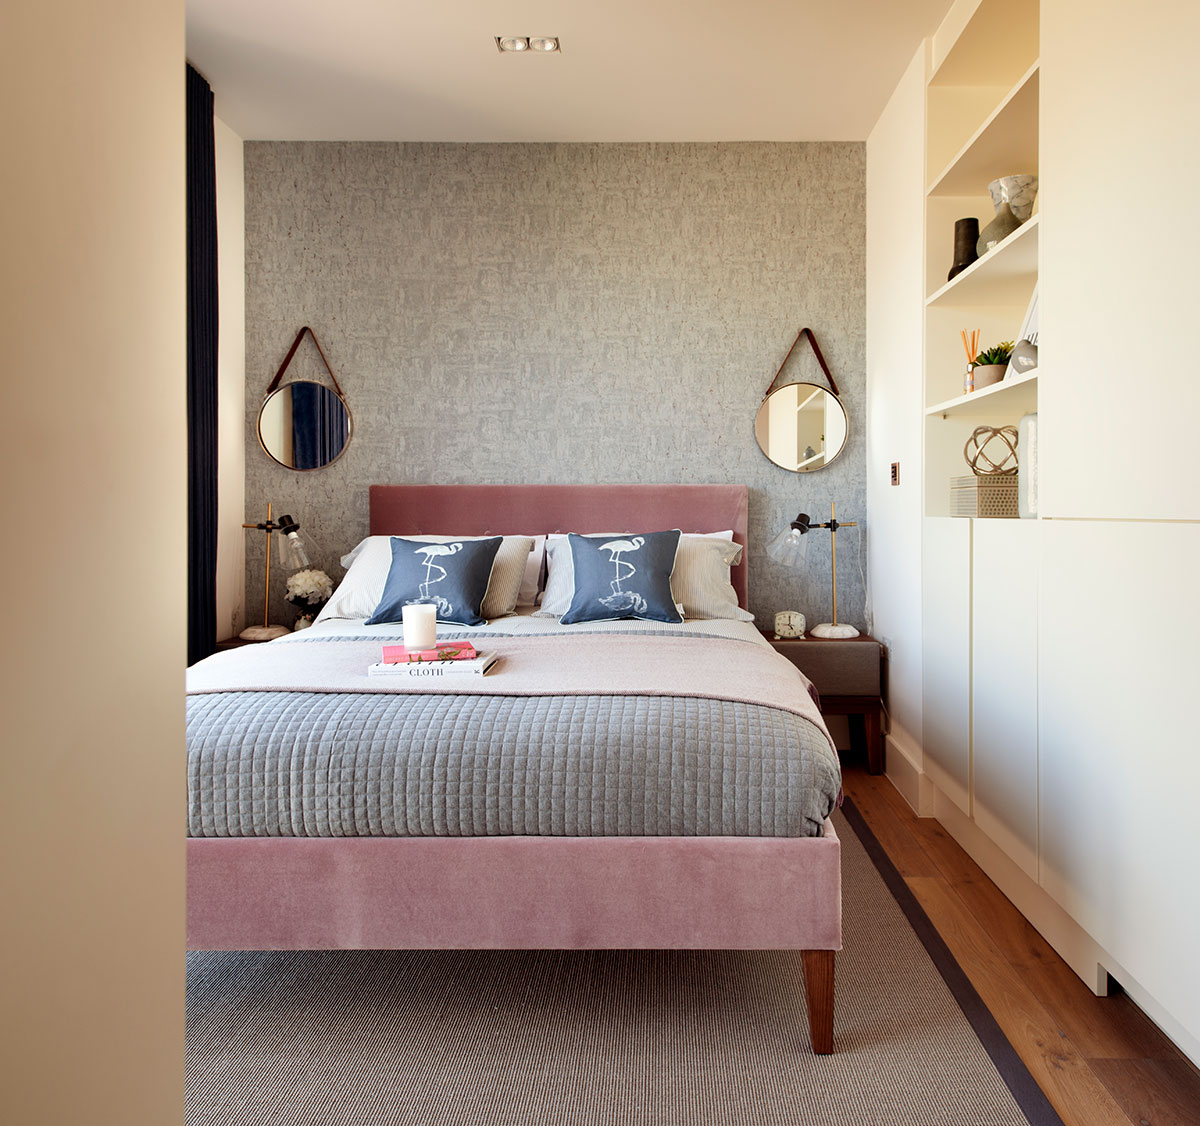 A comfortably designed bedroom in a cosy interior